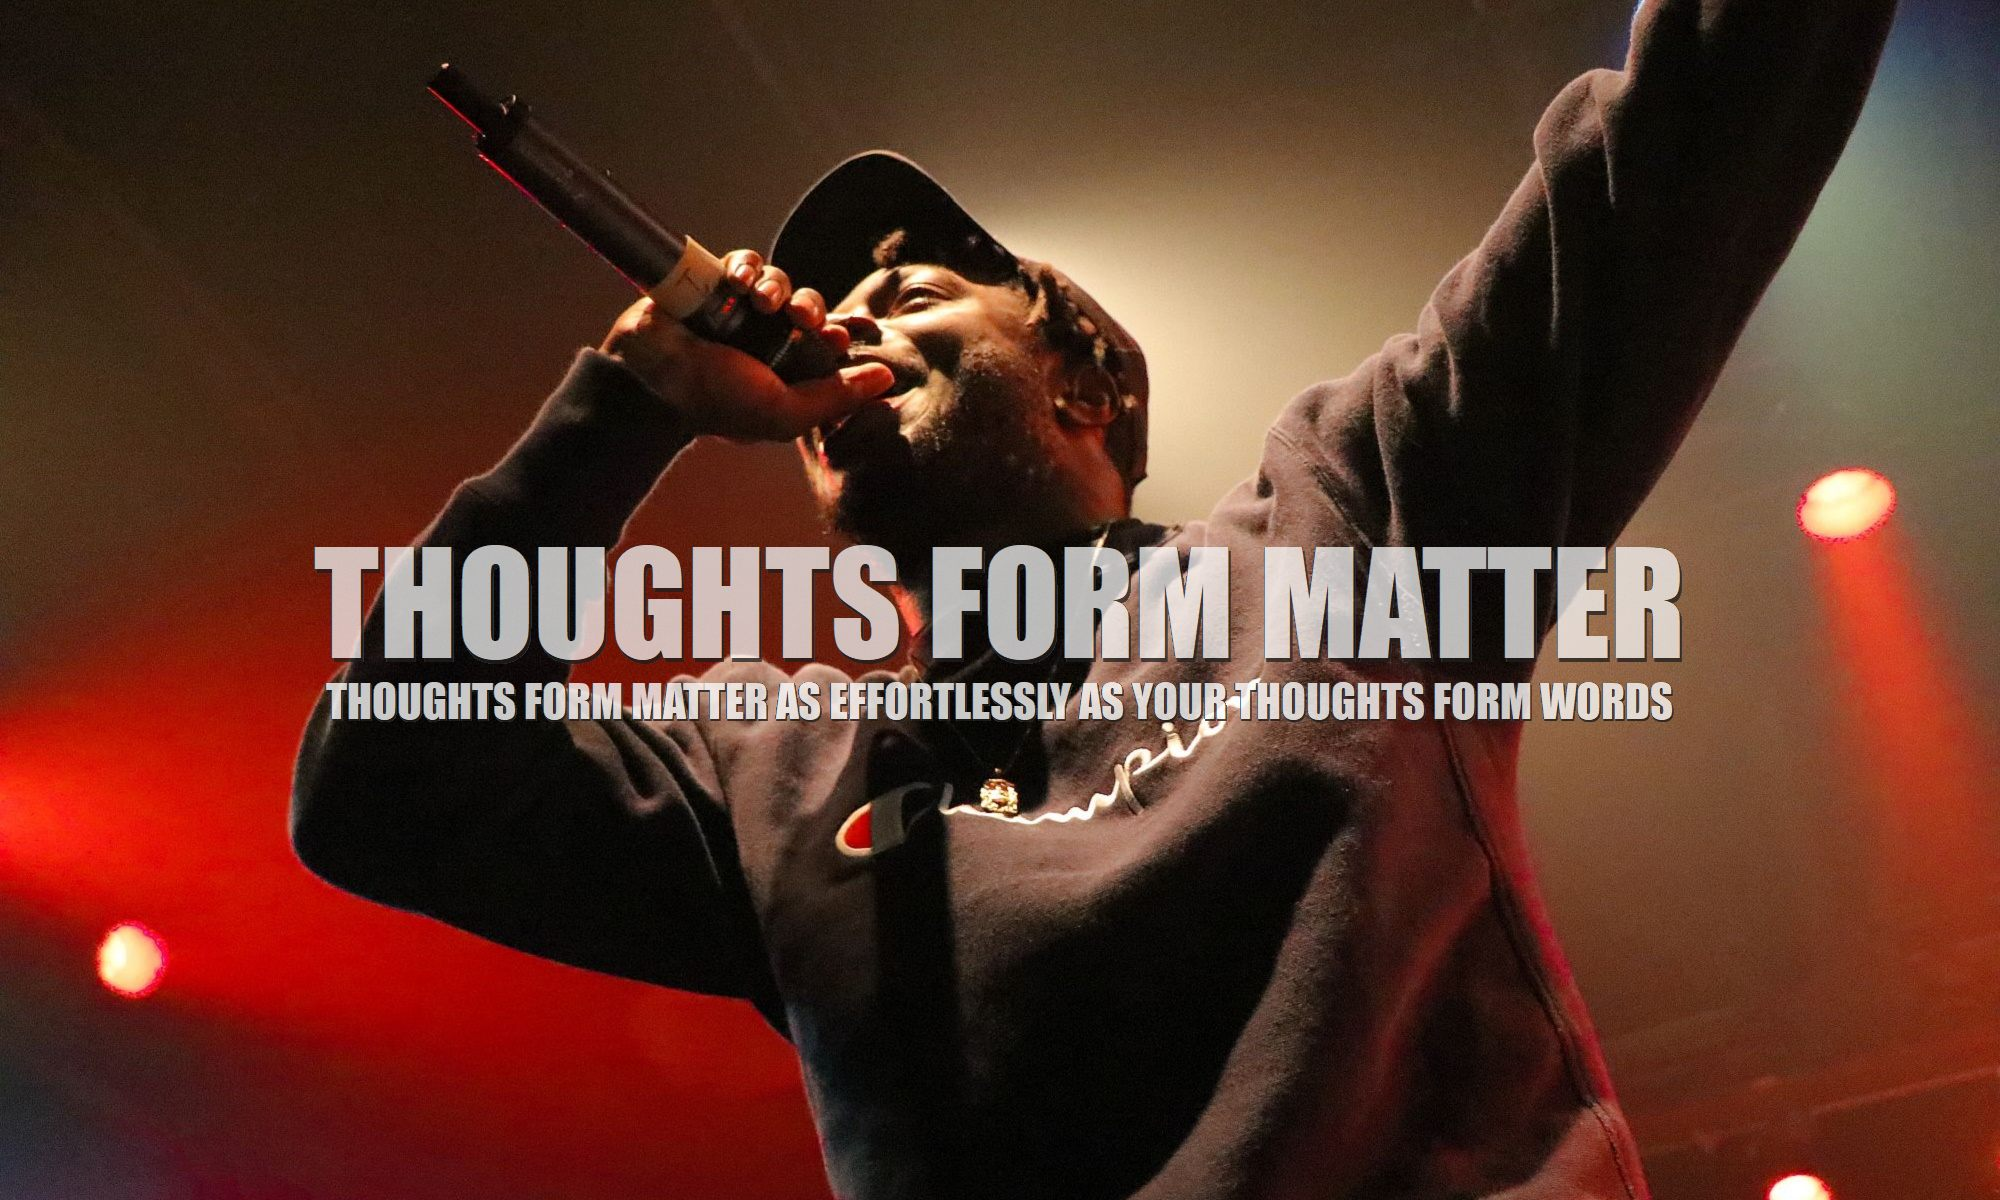 Thoughts-form-matter-consciousness-creates-reality-9900-2000